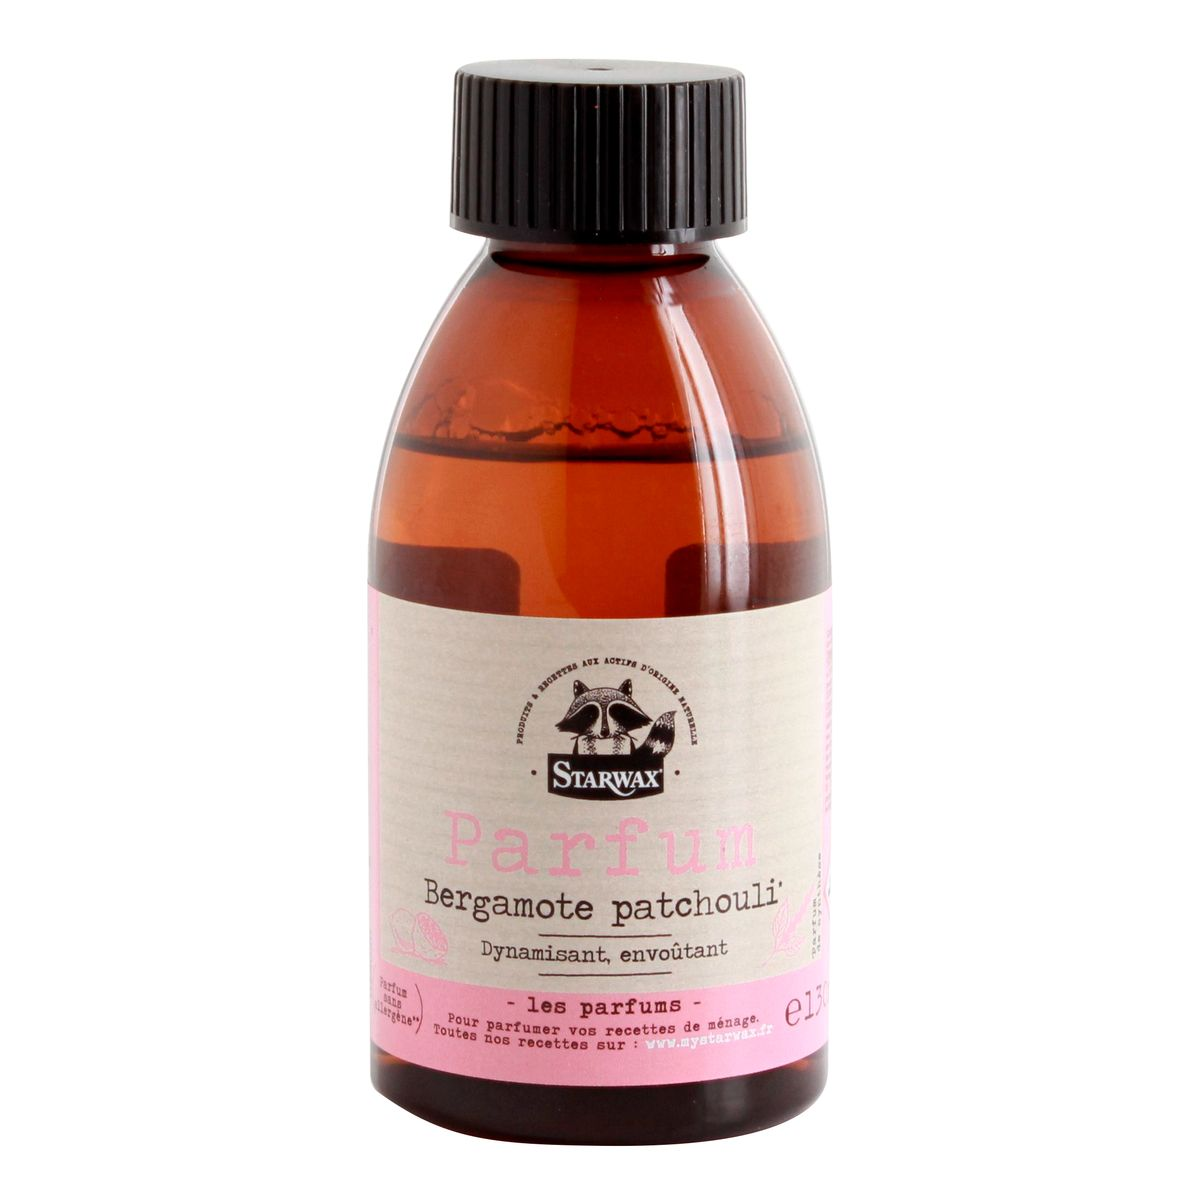 Parfum bergamote patchouli 130ml - My Starwax